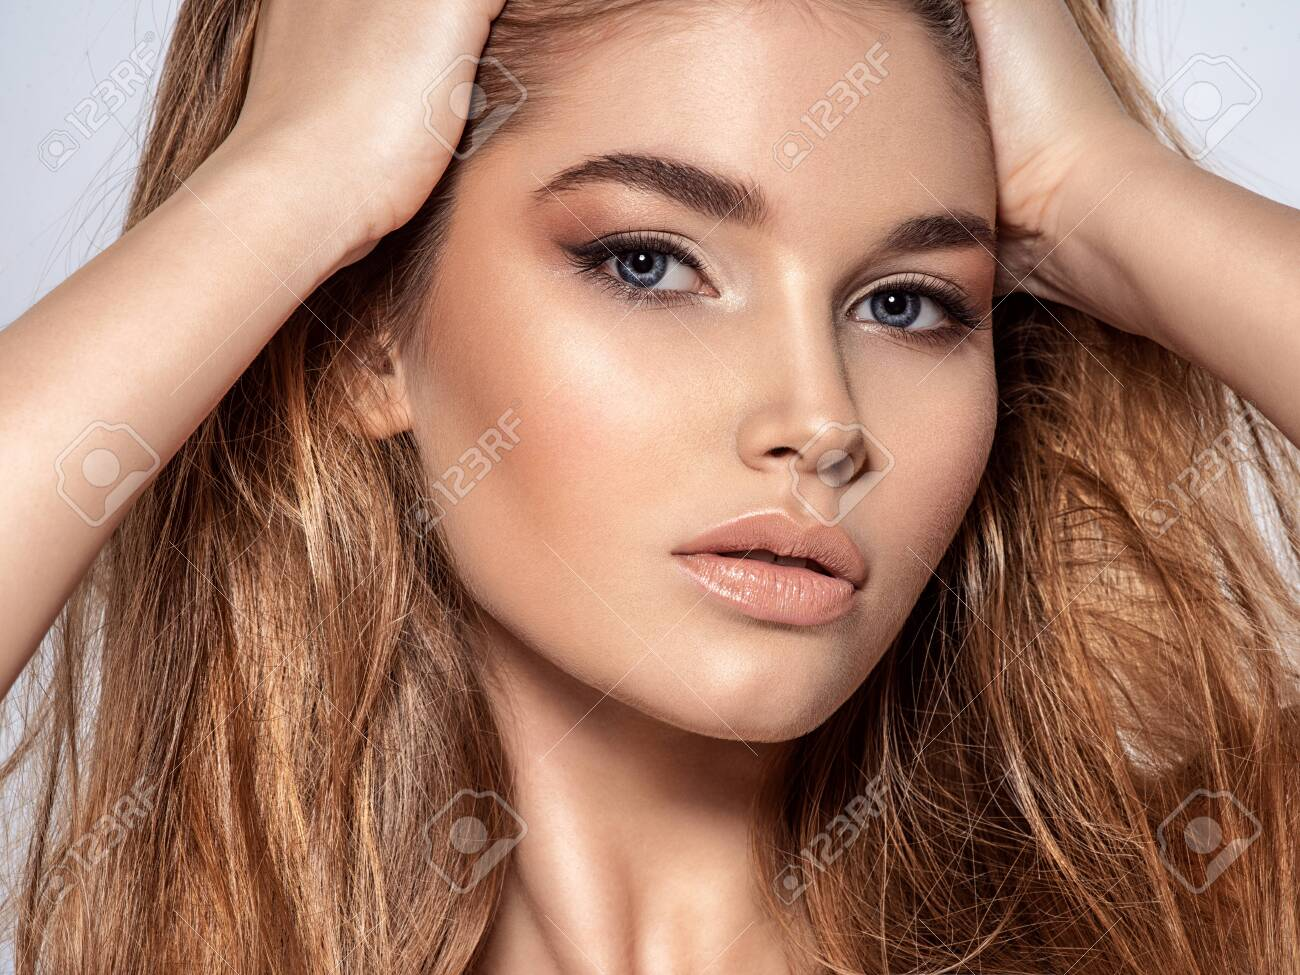 Woman With Beauty Long Brown Hair And Natural Makeup Beautiful Stock Photo Picture And Royalty Free Image Image 129600520